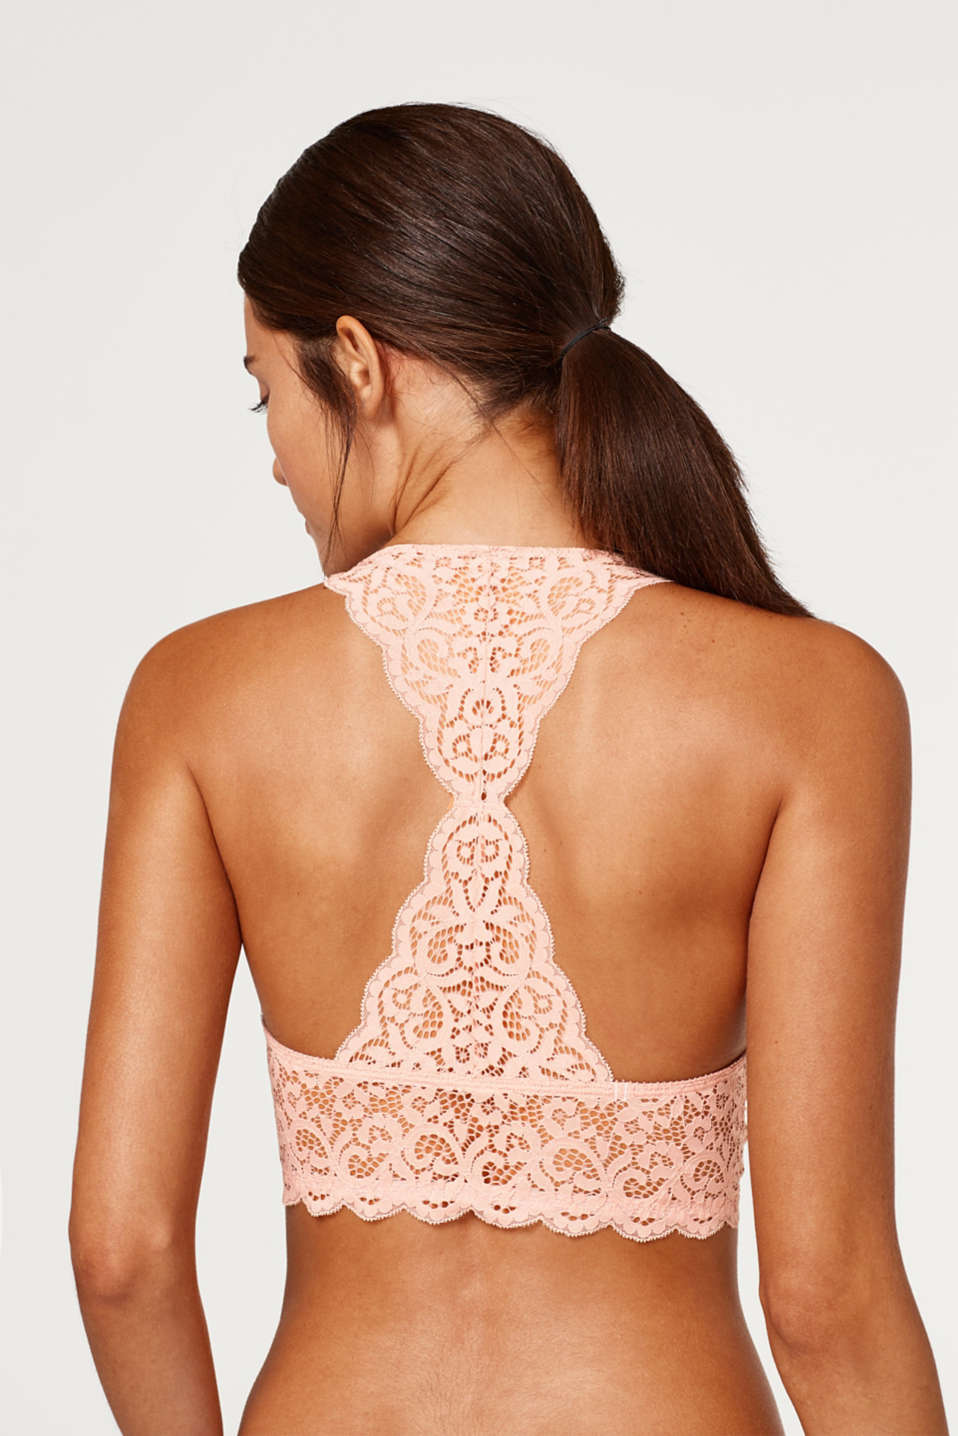 Padded, non-wired bra in decorative lace